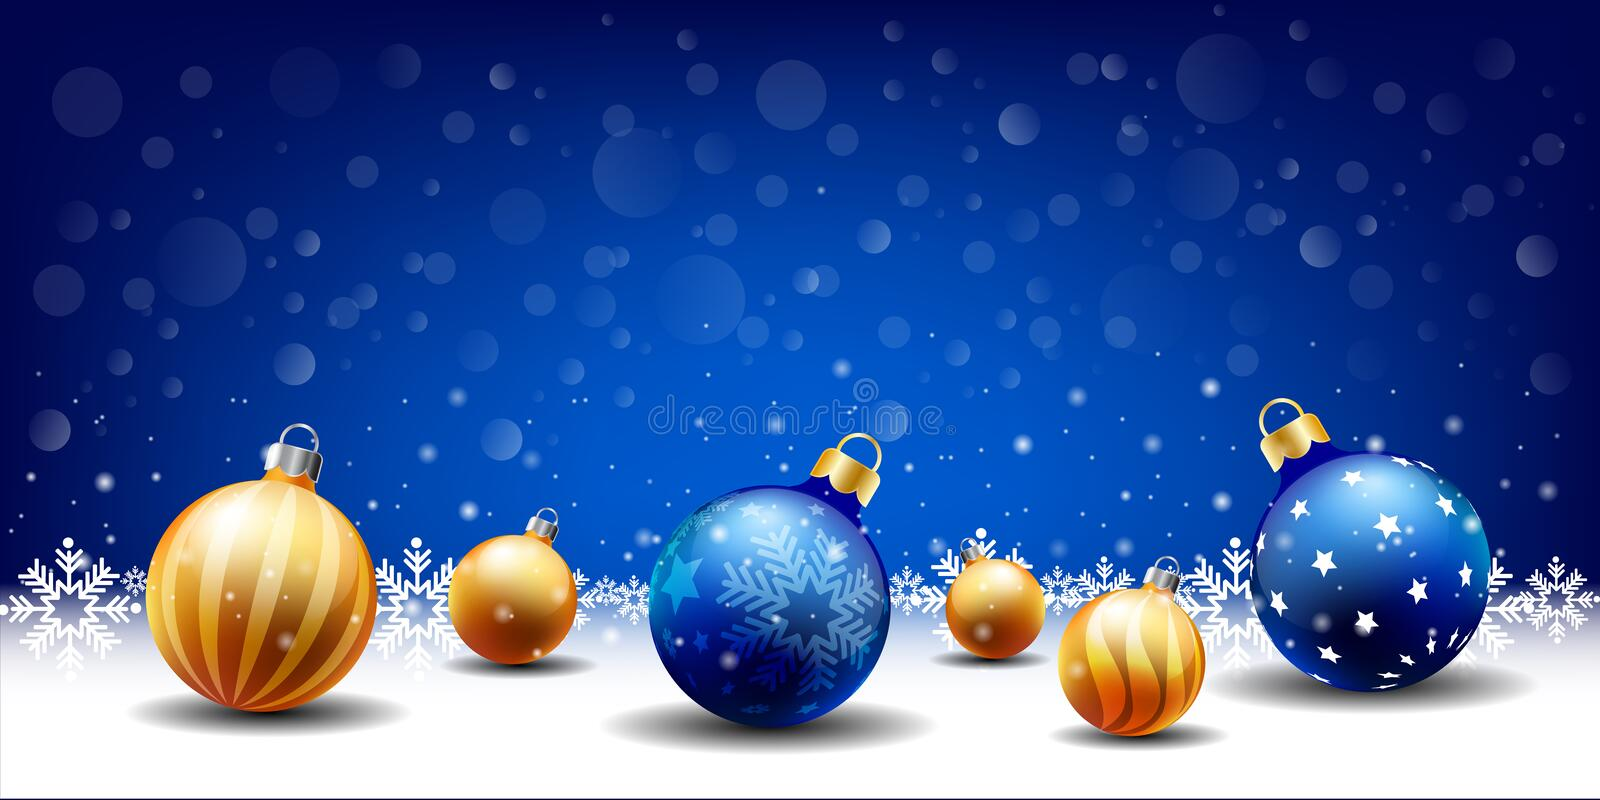 Happy New Year Christmas snowing Ball background, Text input box,Blue background vector illustration